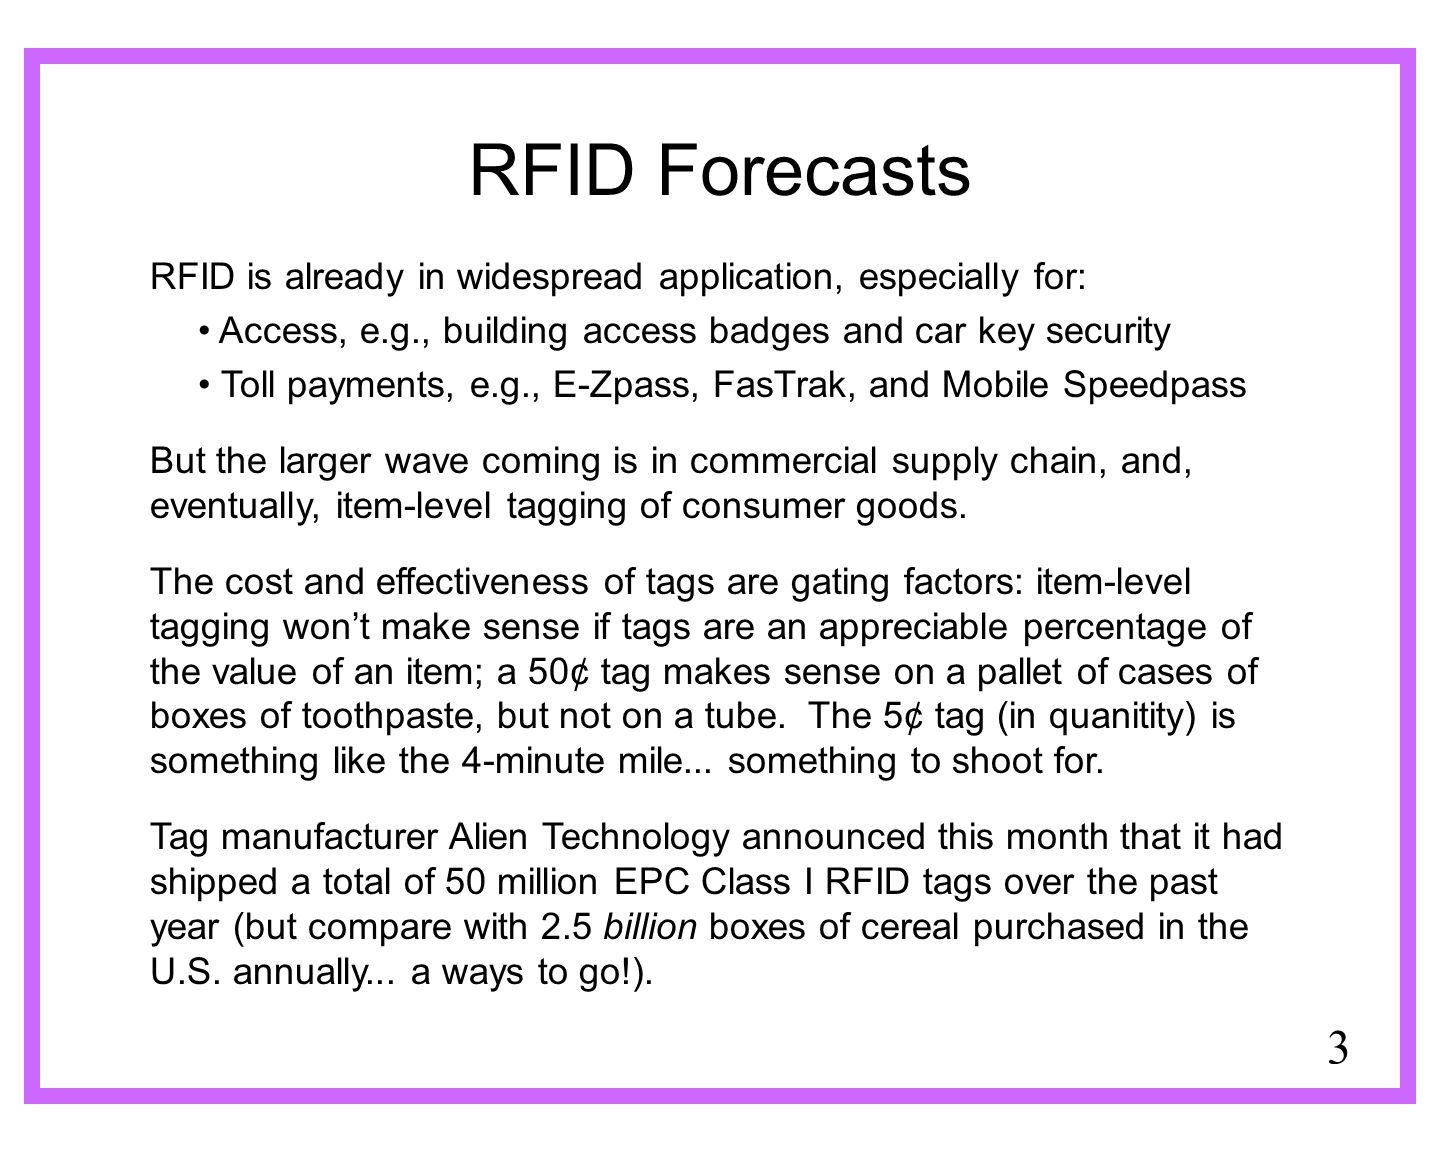 3 RFID Forecasts RFID is already in widespread application, especially for: Access, e.g., building access badges and car key security Toll payments, e